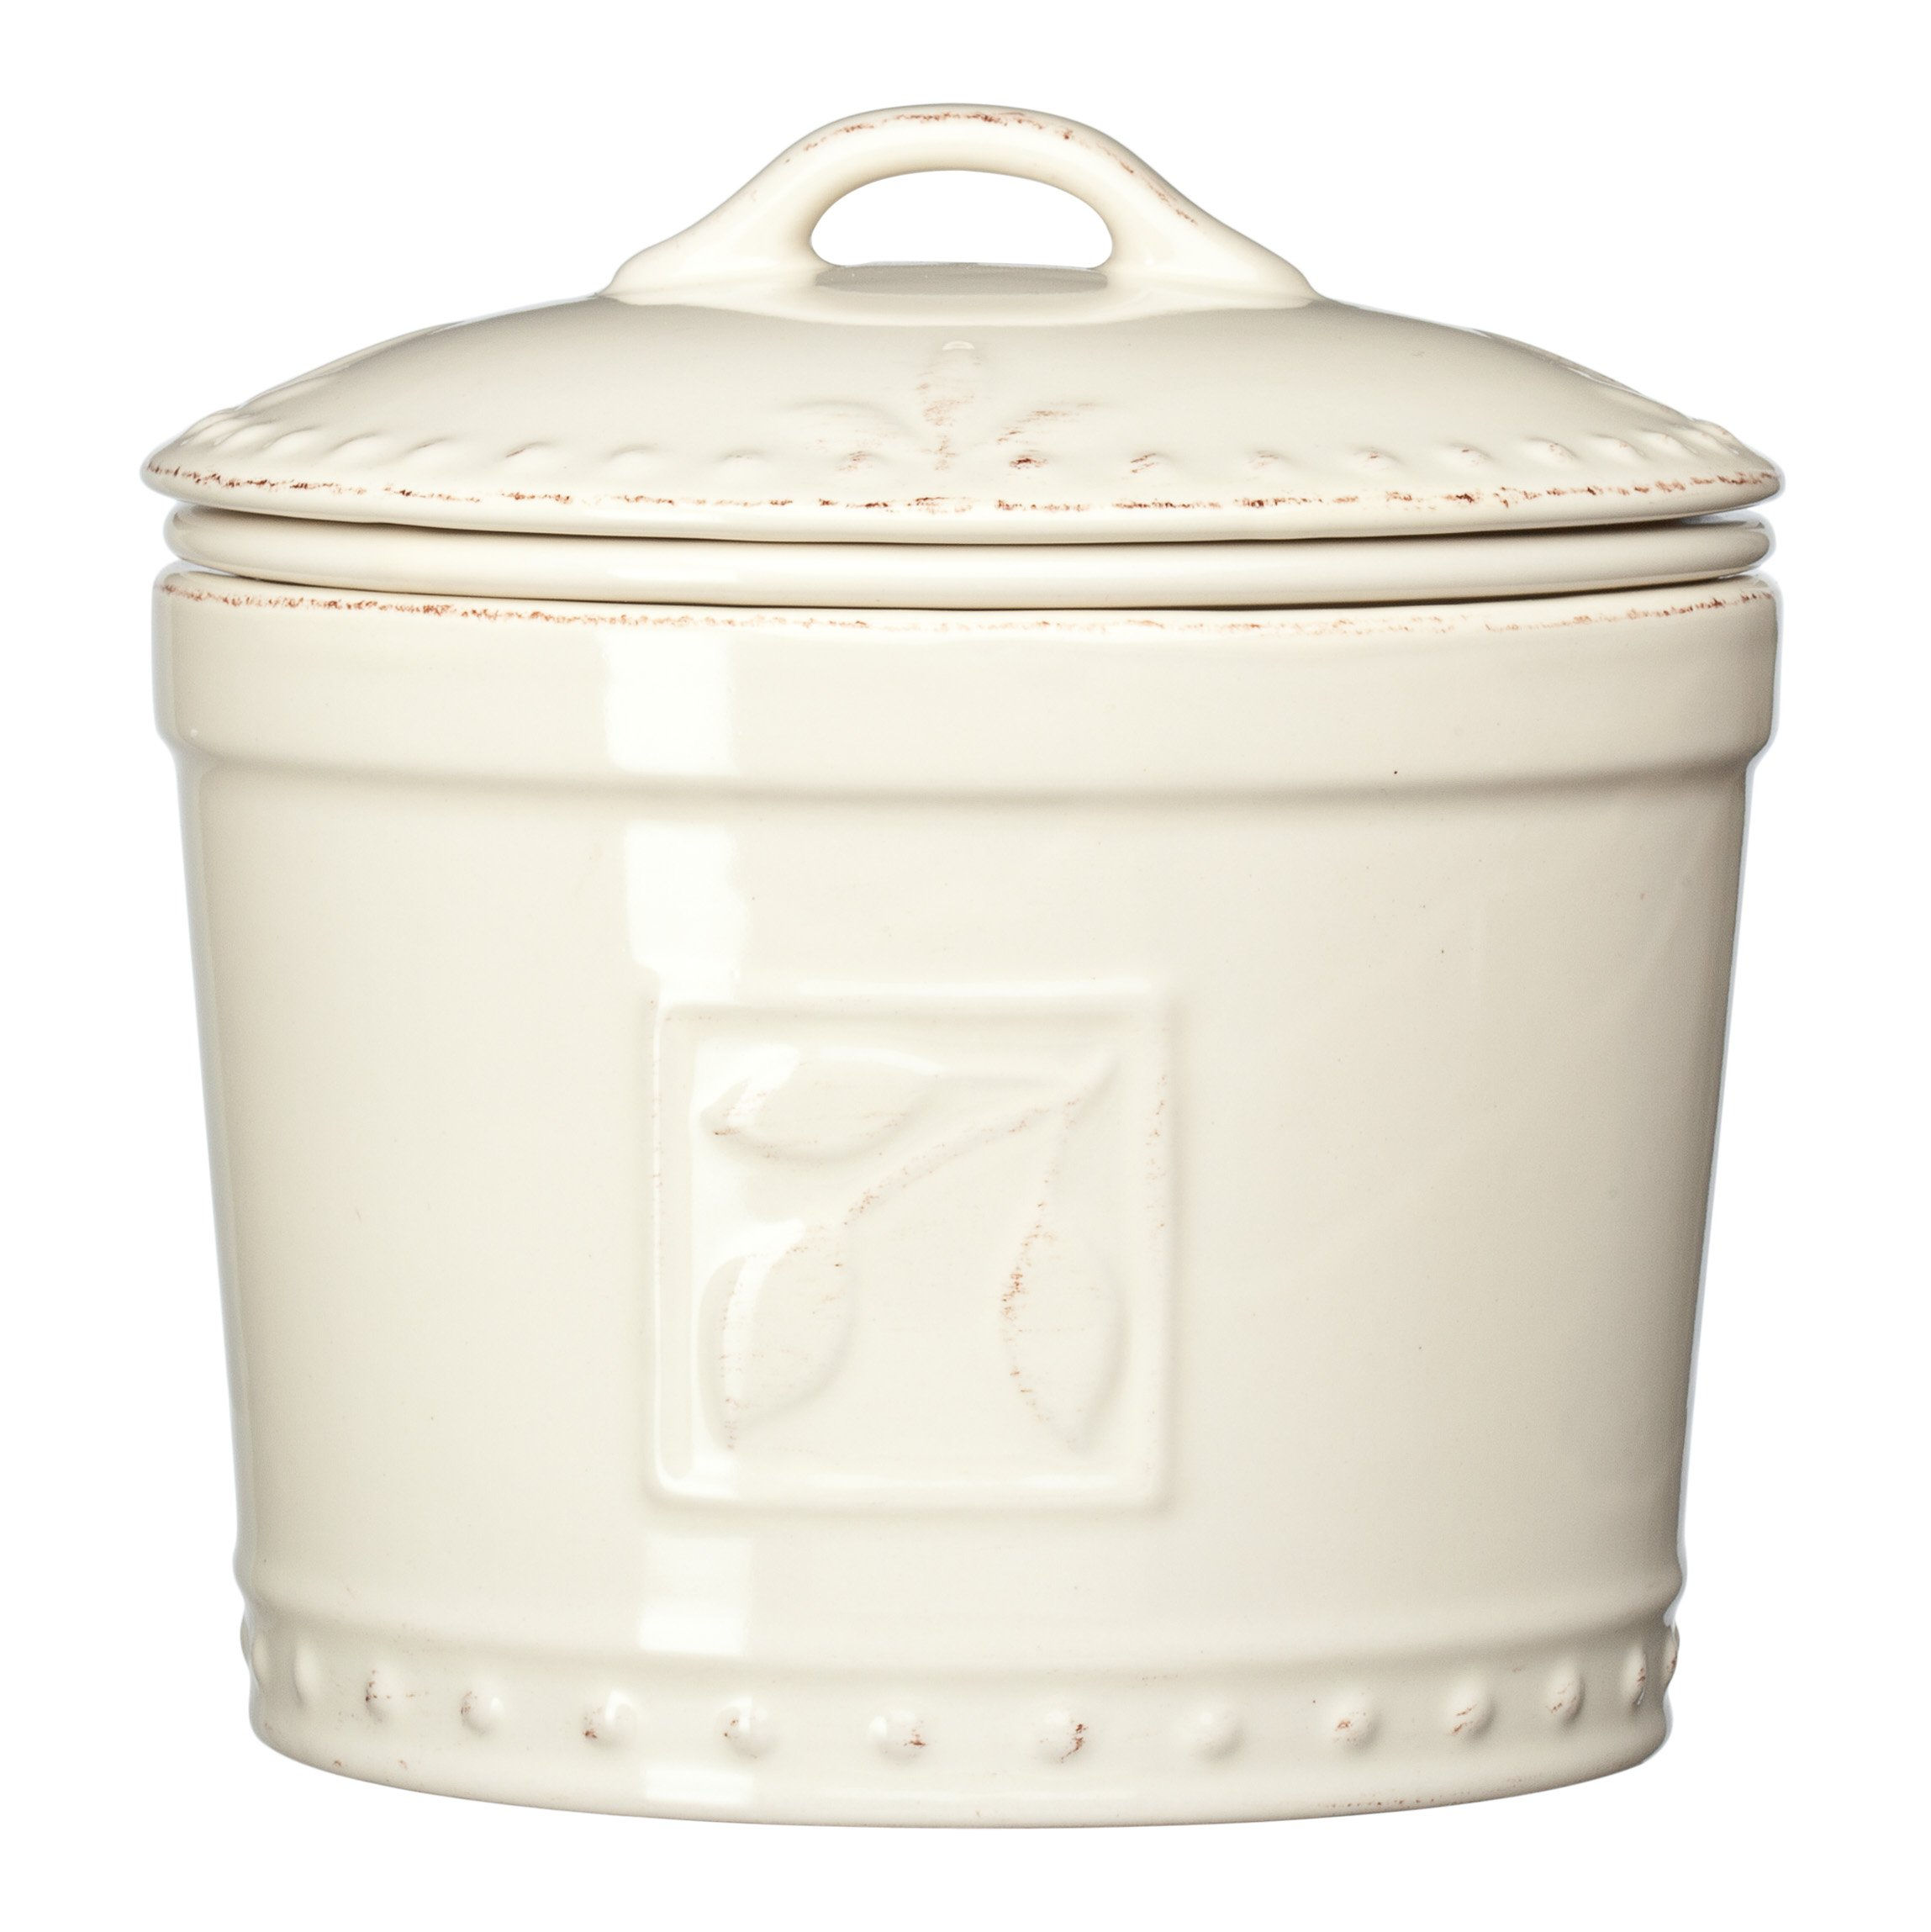 Signature Housewares Sorrento Collection Stoneware Dip Chiller, Ivory Antiqued Finish